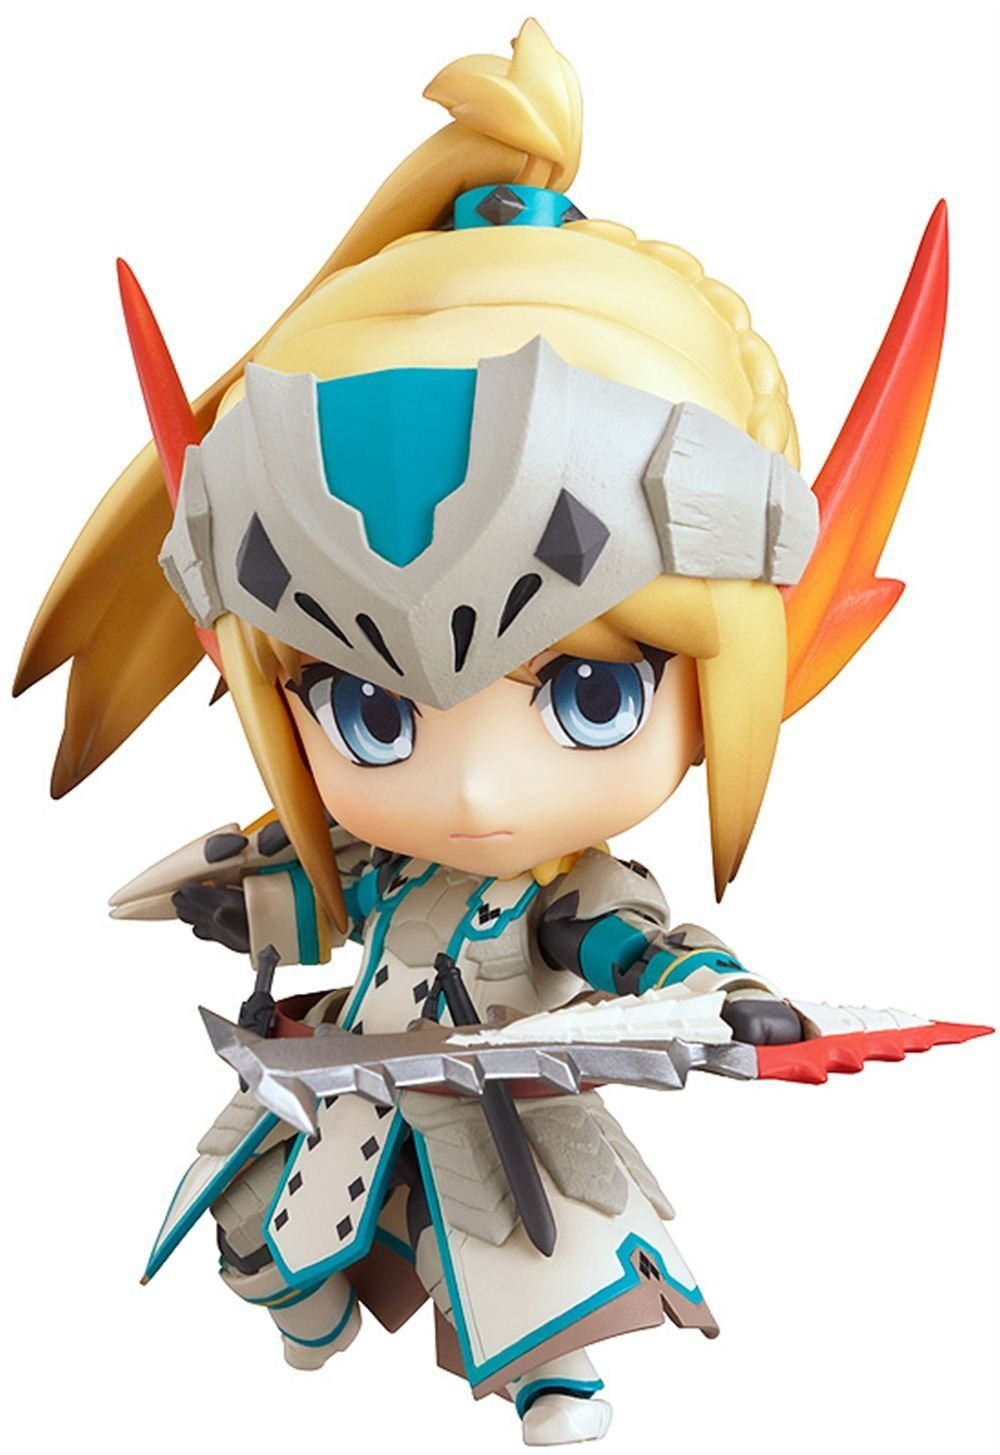 Nendoroid Monster Hunter Girl Awesome, Just absolutely